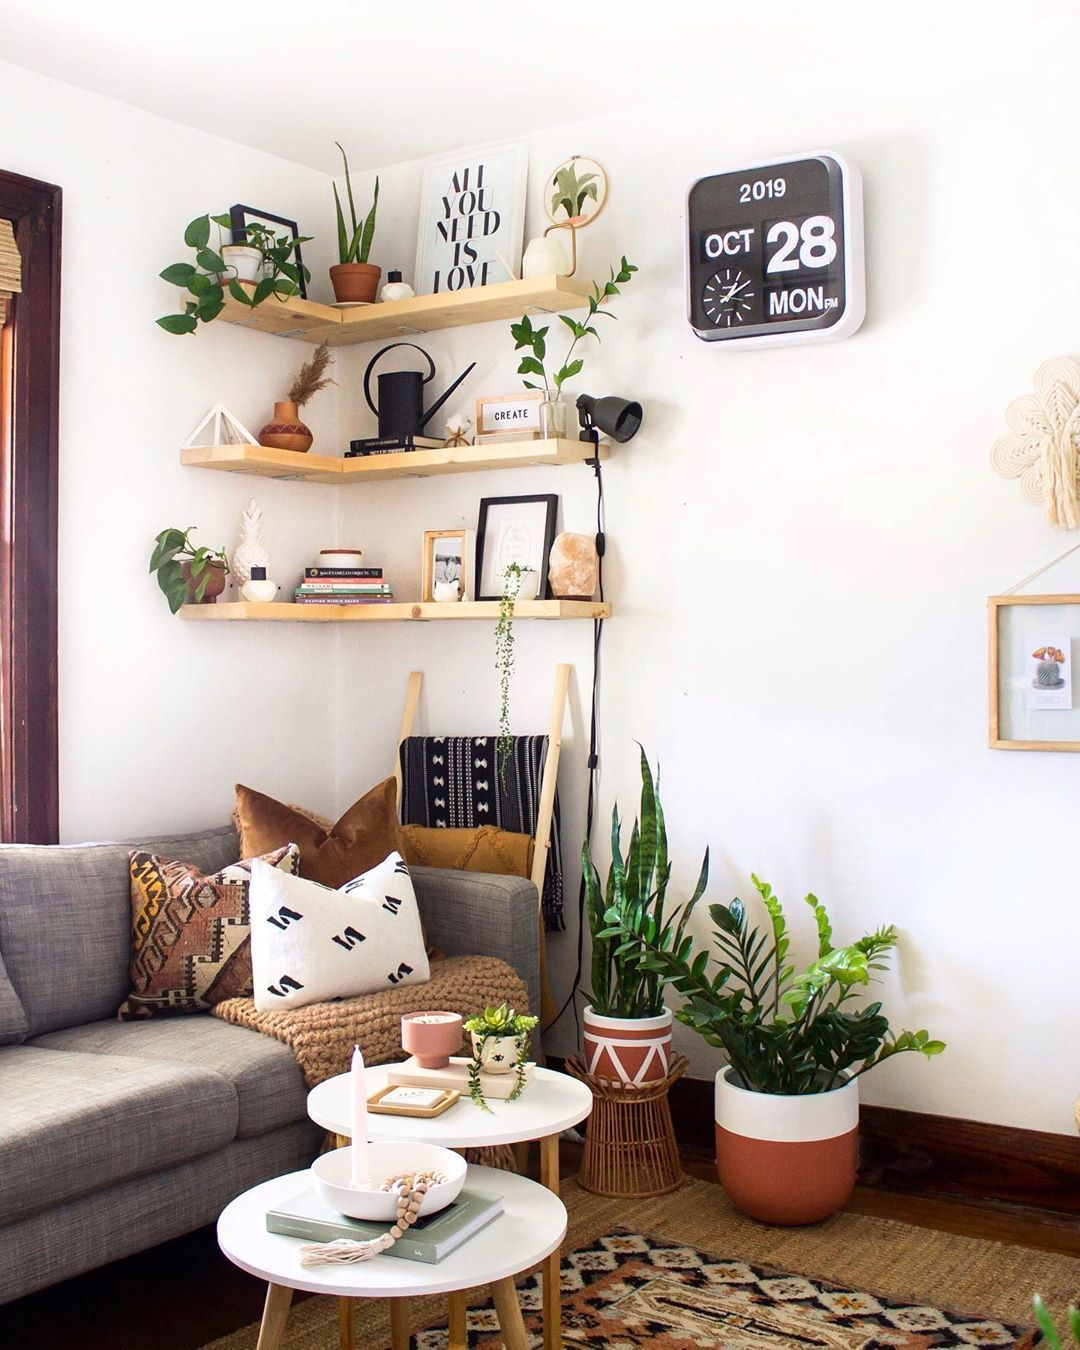 17 Tips Tricks For Small Space Living Extra Space Storage In 2020 Small Living Room Decor Living Room Design Small Spaces Decorating Small Spaces #small #living #room #storage